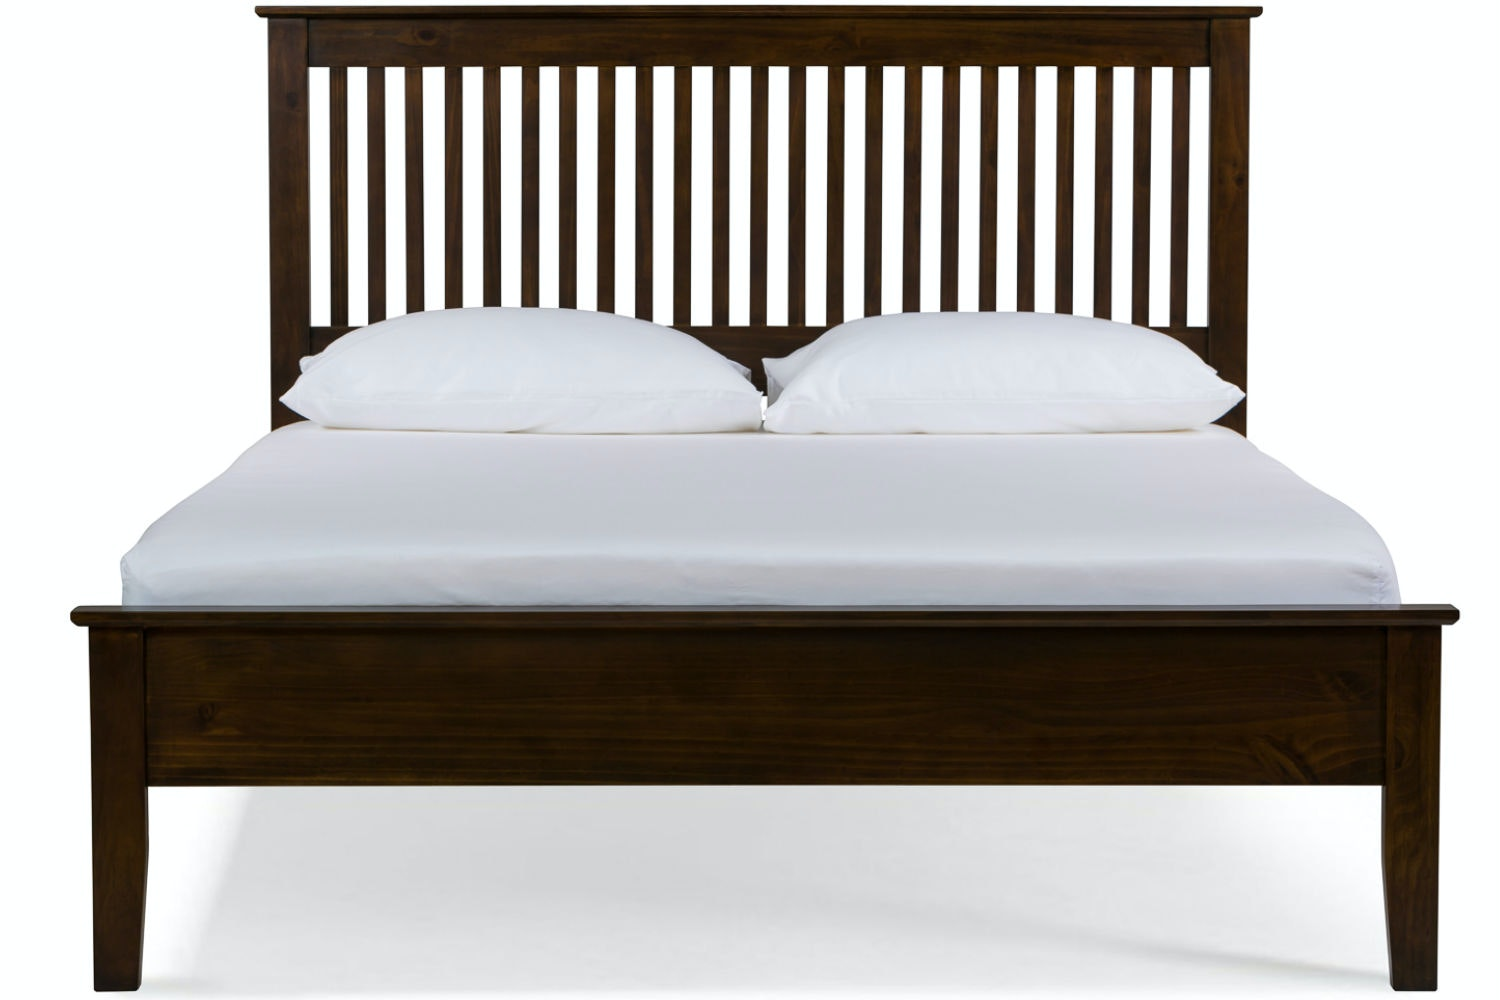 Wentworth Double Bed Frame | 4ft6